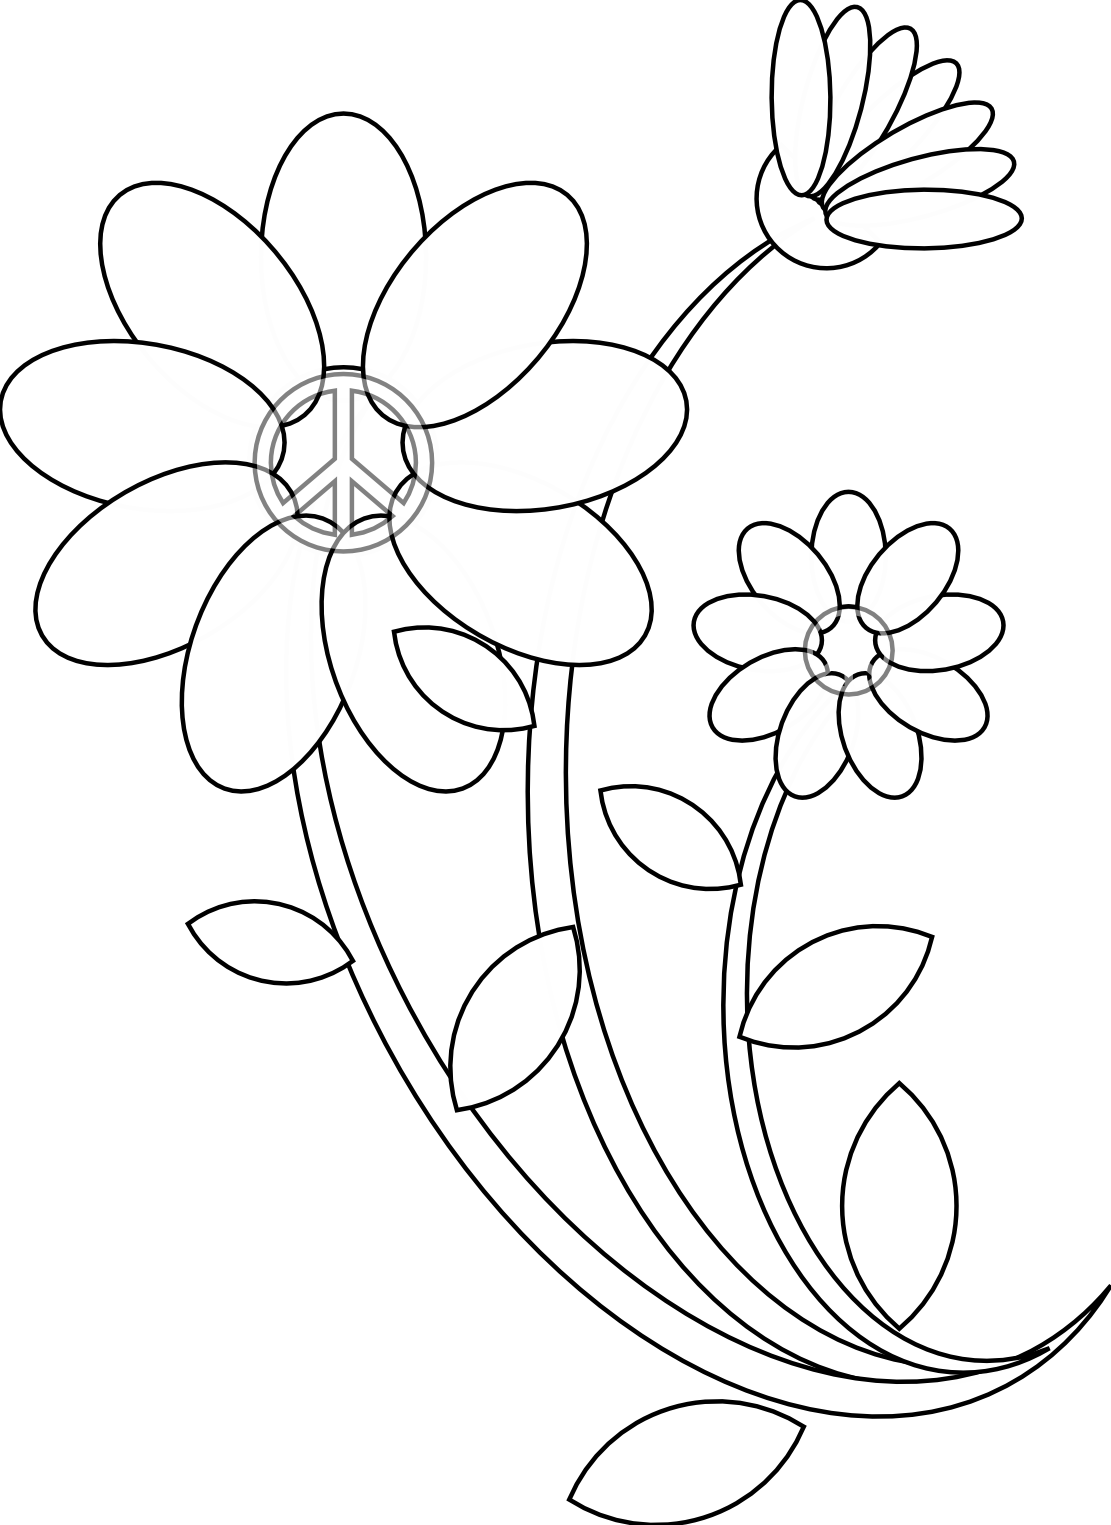 Line Drawing Flower Images : Flowers line drawing images clipart best